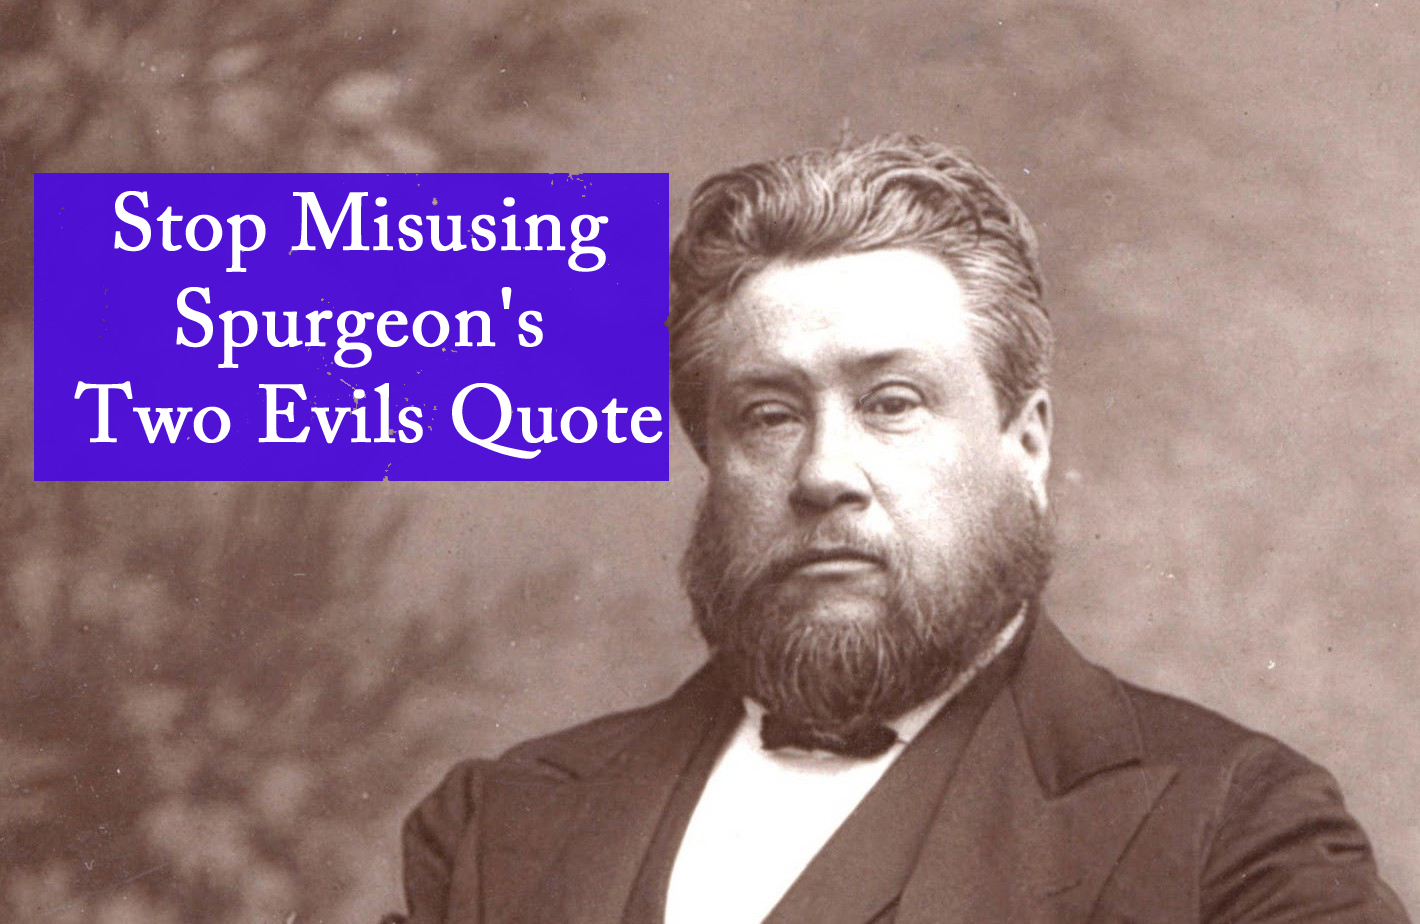 Stop Misusing Spurgeon's Two Evils Quote